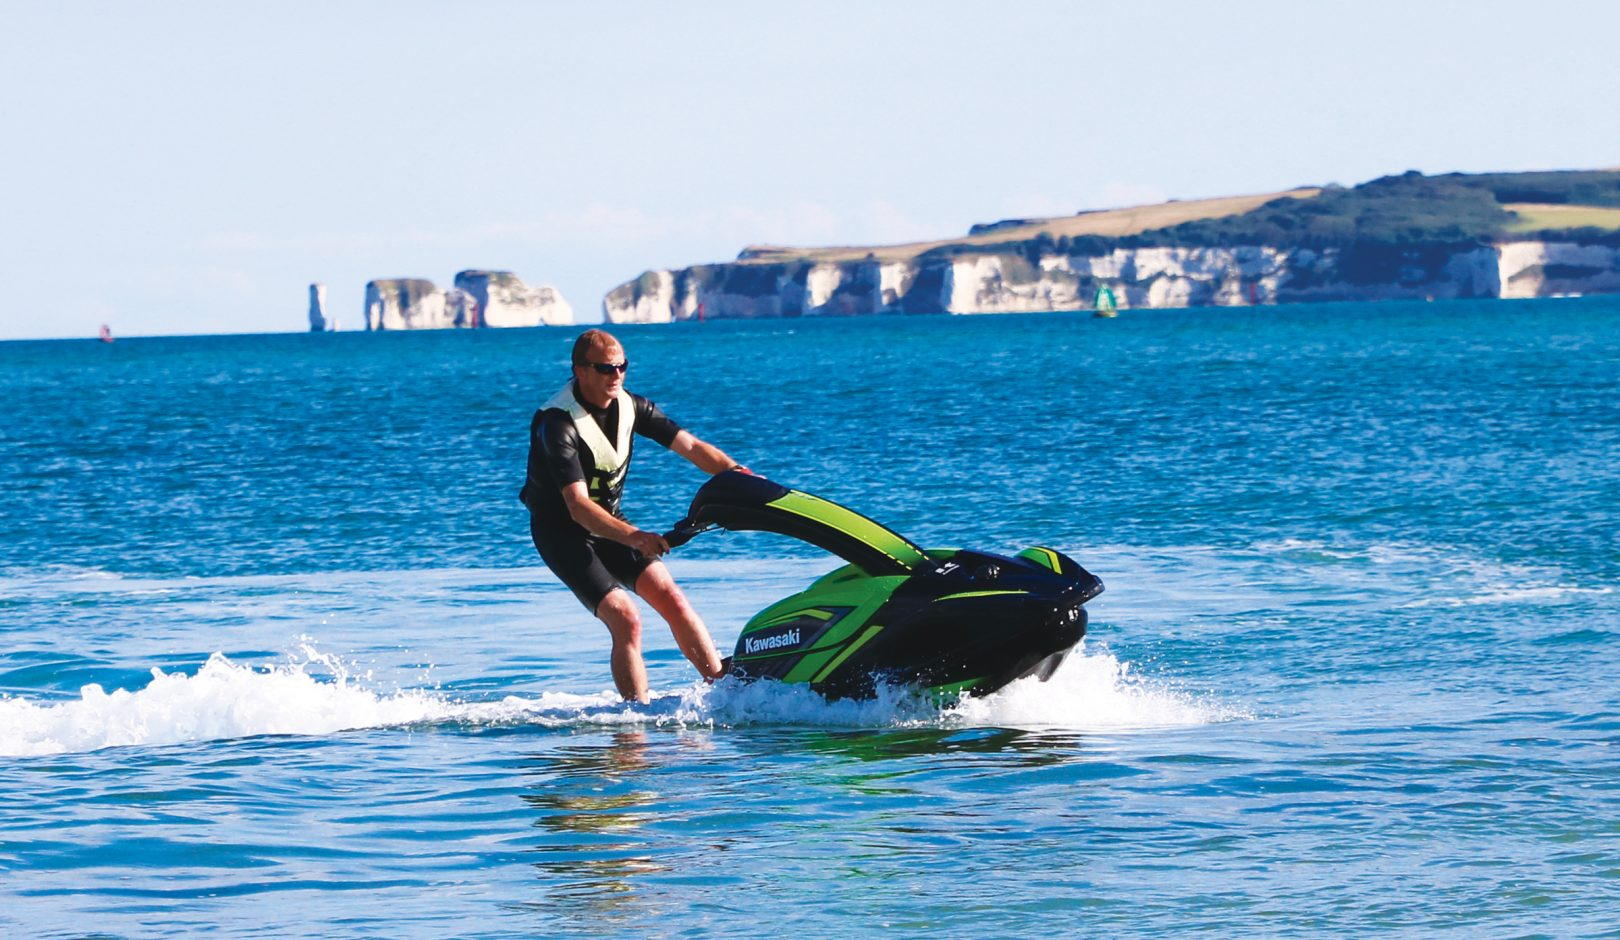 Kawasaki SX-R review: Stand-up Jet Ski delivers extreme performance